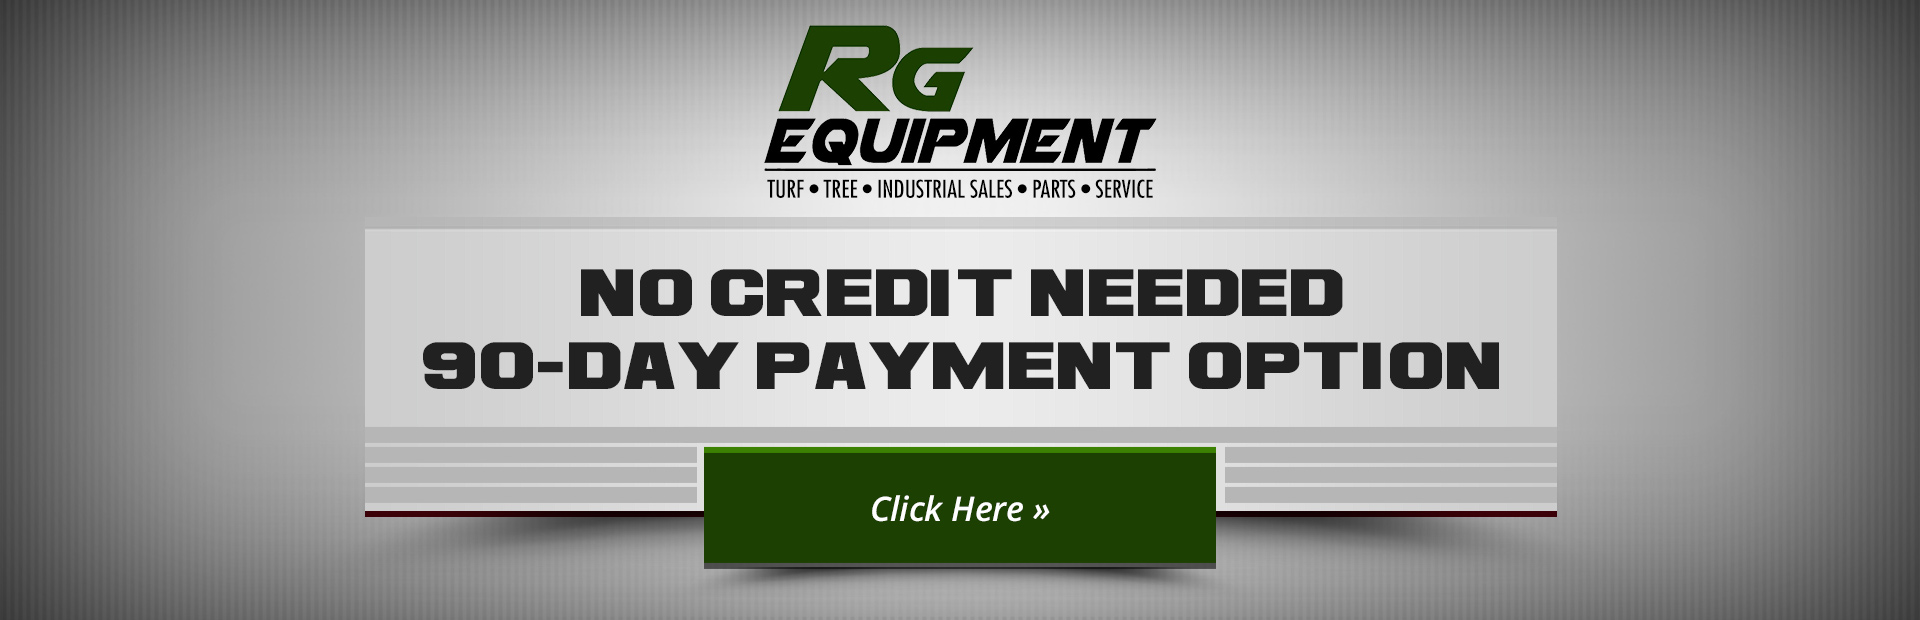 RG Equipment: No Credit Needed | 90-Day Payment Option